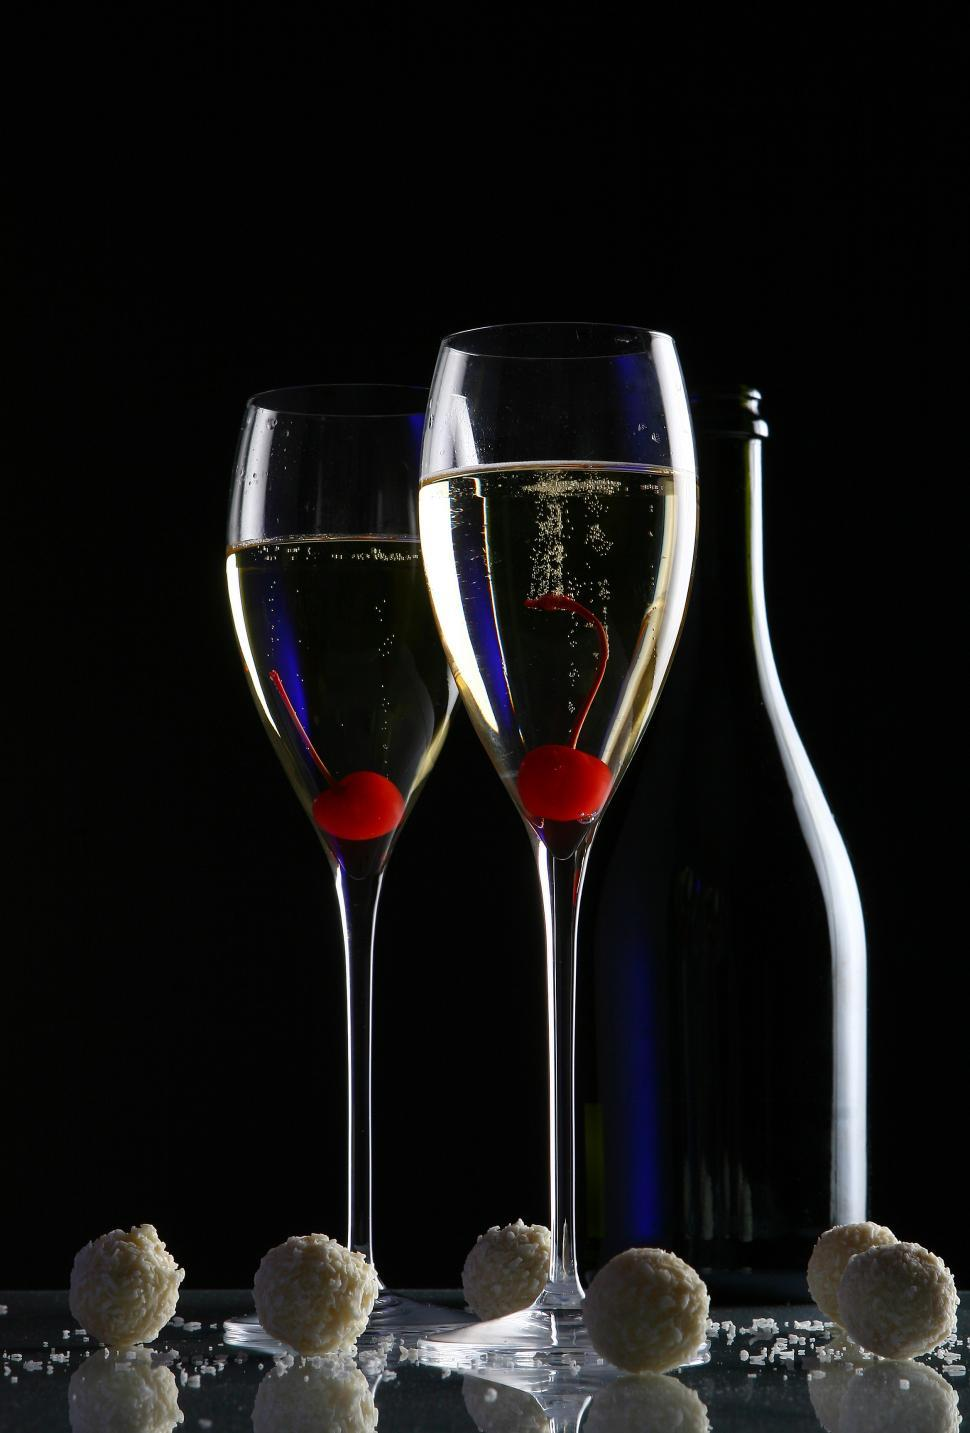 Download Free Stock Photo of two glasses of champagne, dark background